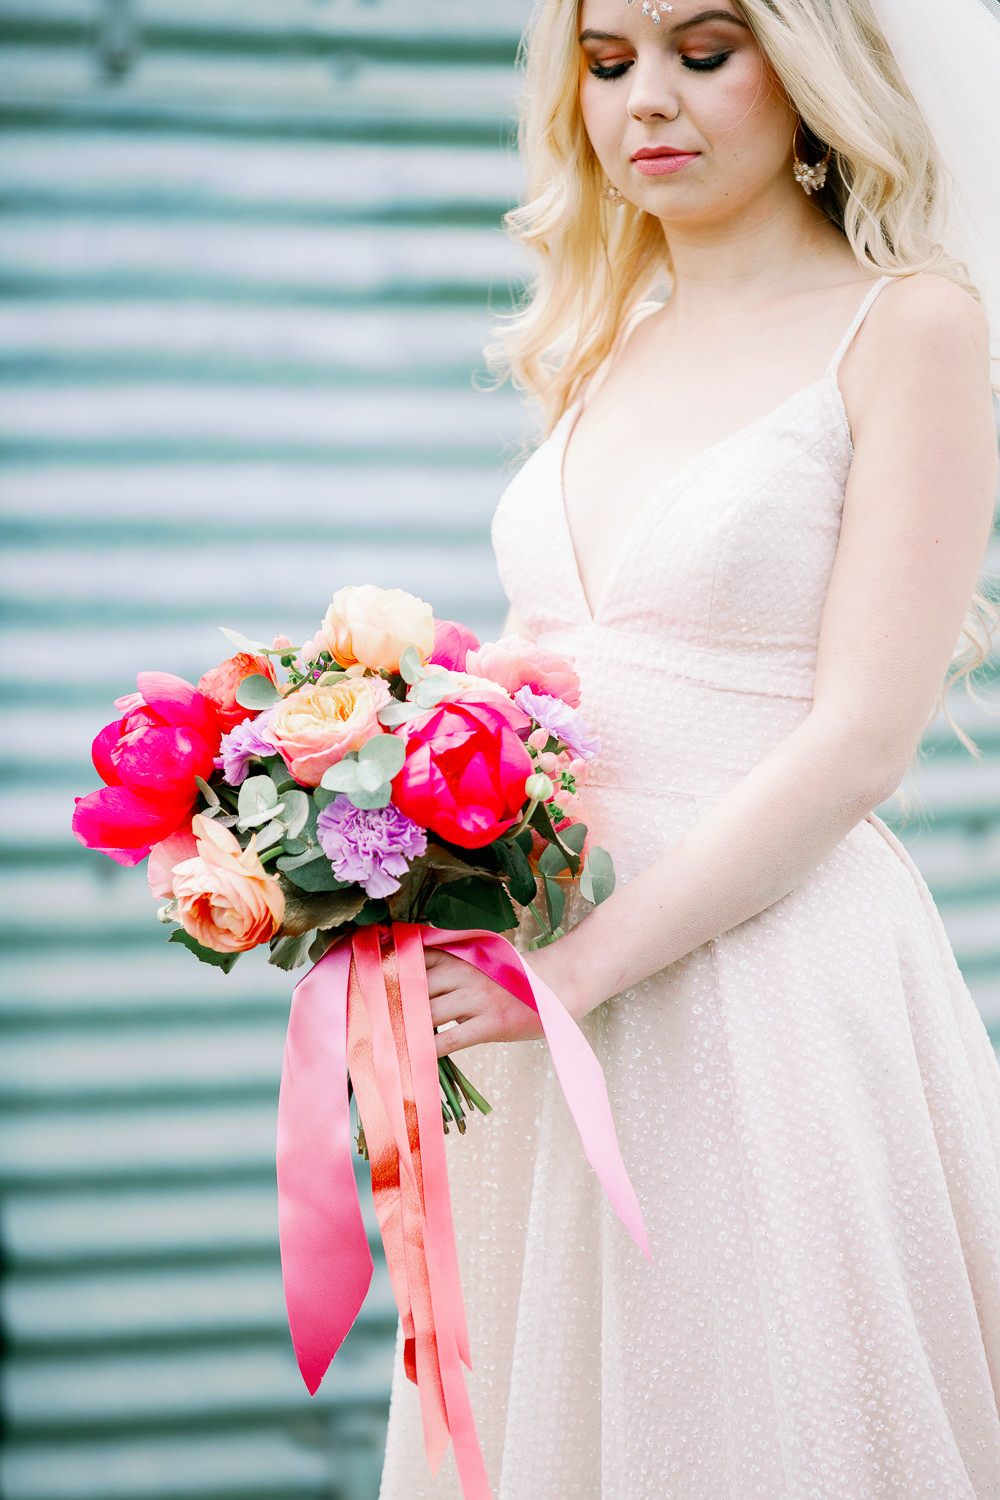 Bouquet Flowers Bride Bridal Peony Peonies Rose Ribbon Coral Peach Wedding Ideas Courtney Dee Photography